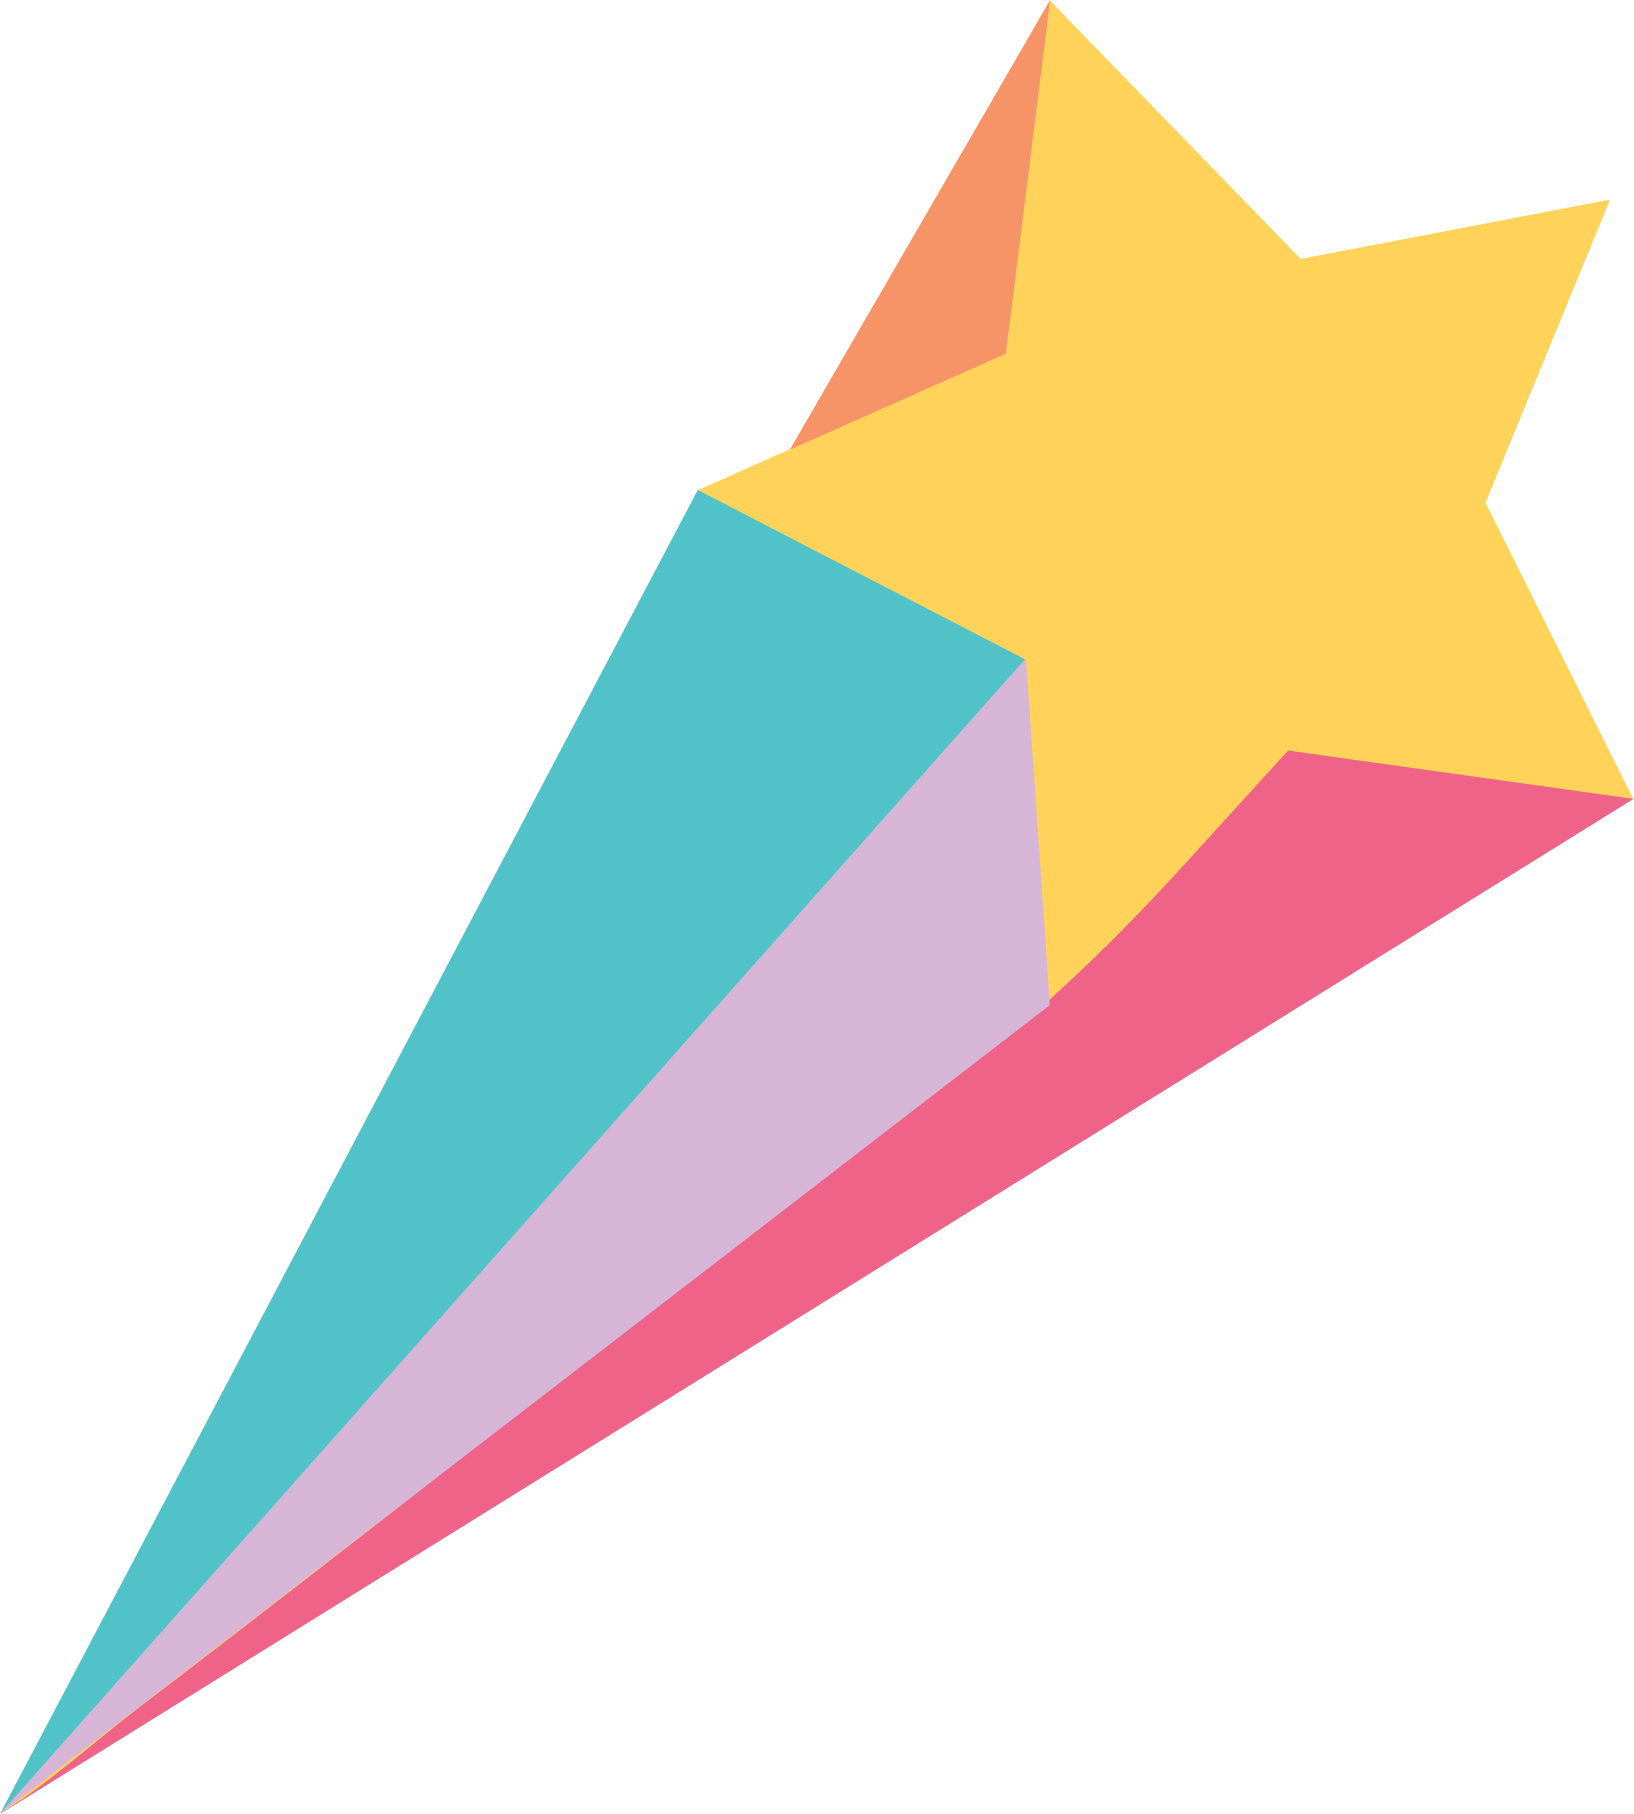 Shooting Star SVG Cut File - Snap Click Supply Co.